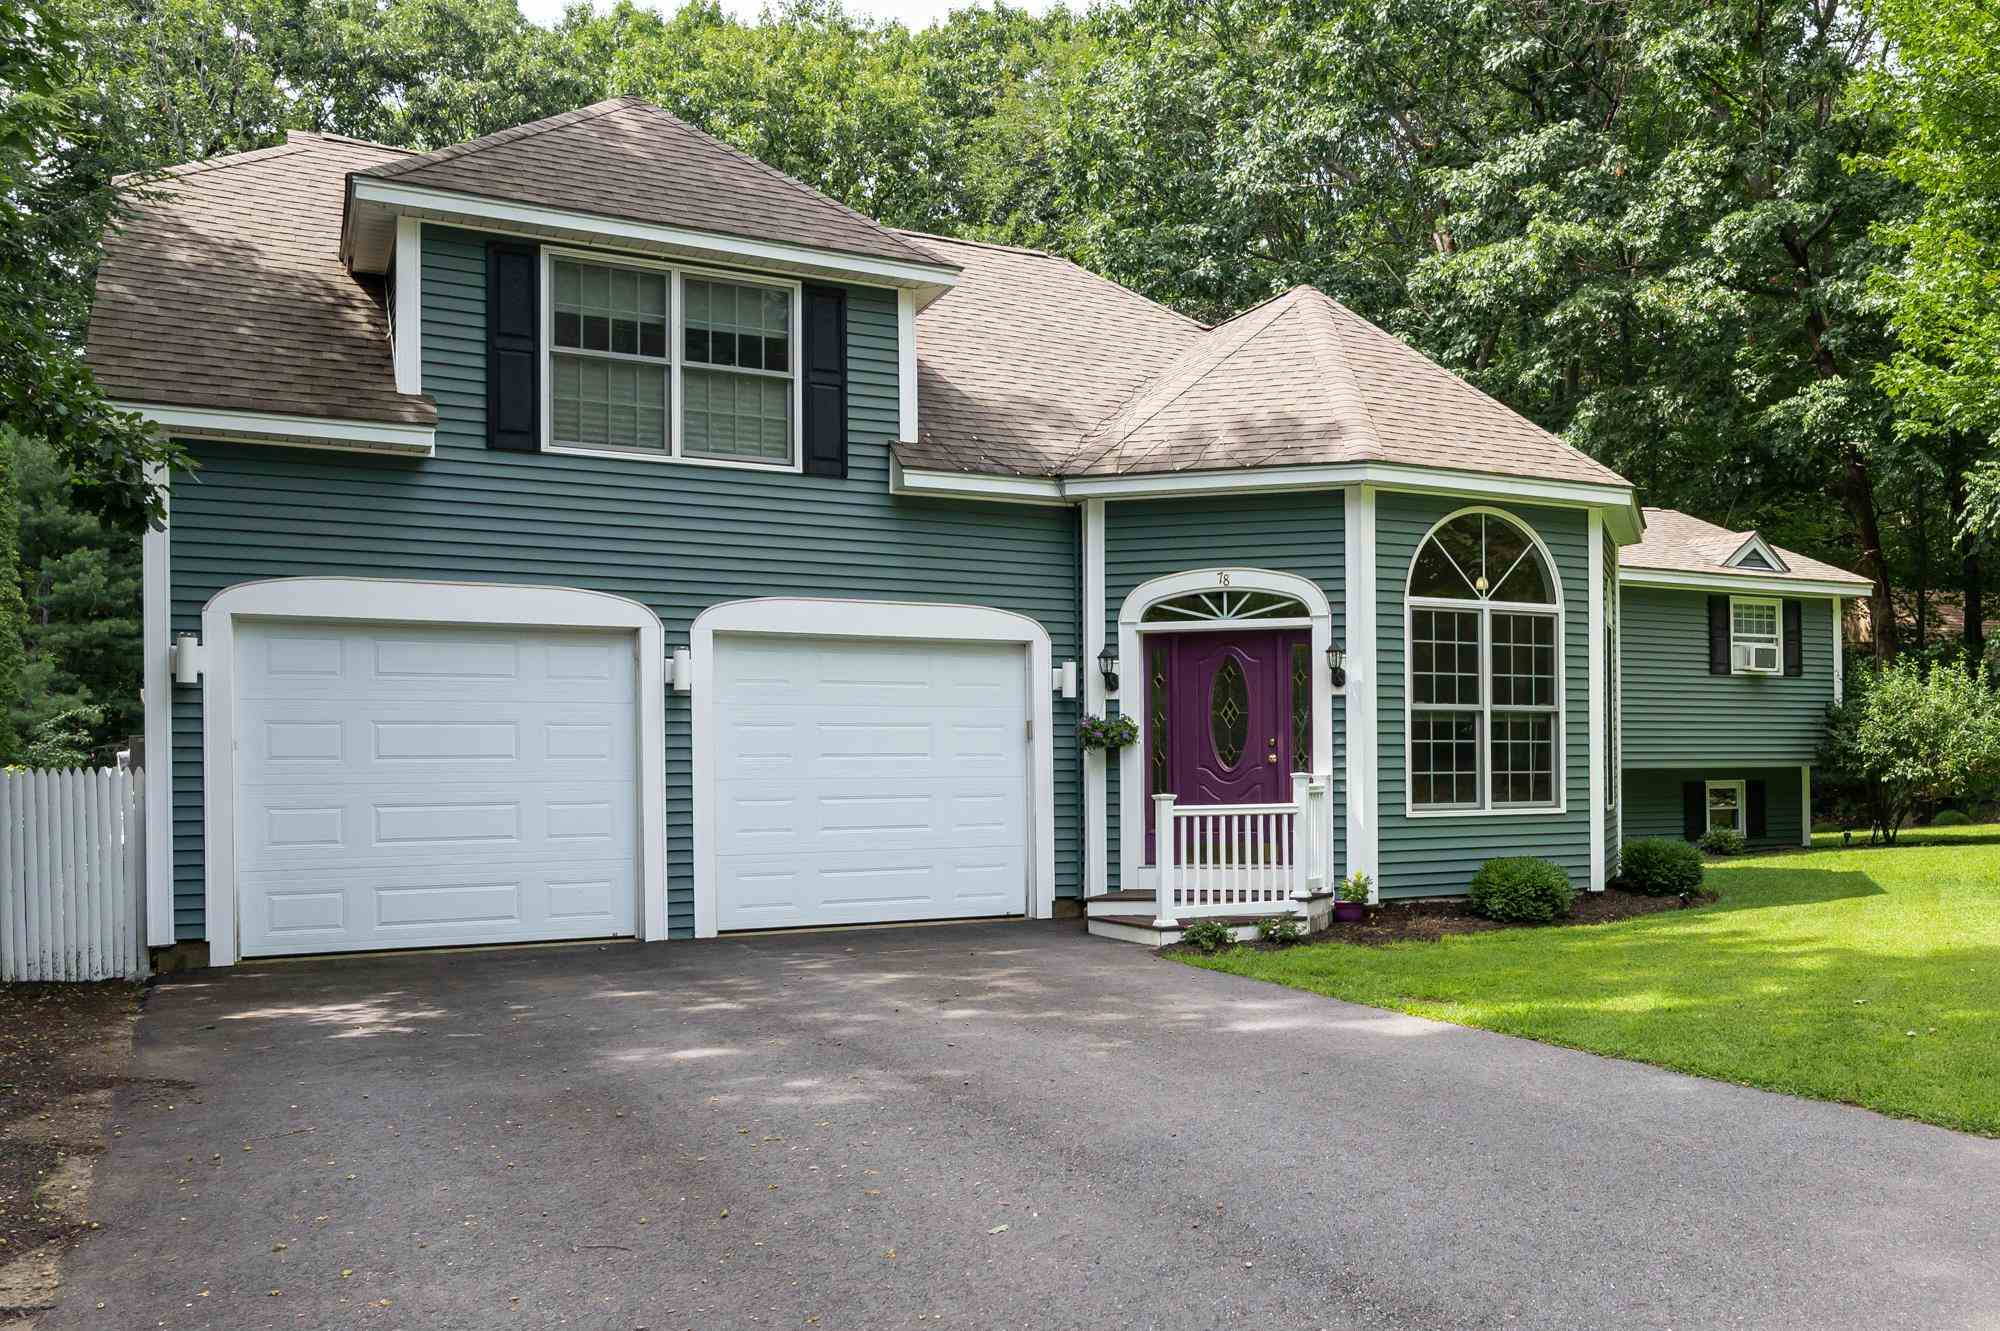 Photo of 78 Woodvale Drive Laconia NH 03246